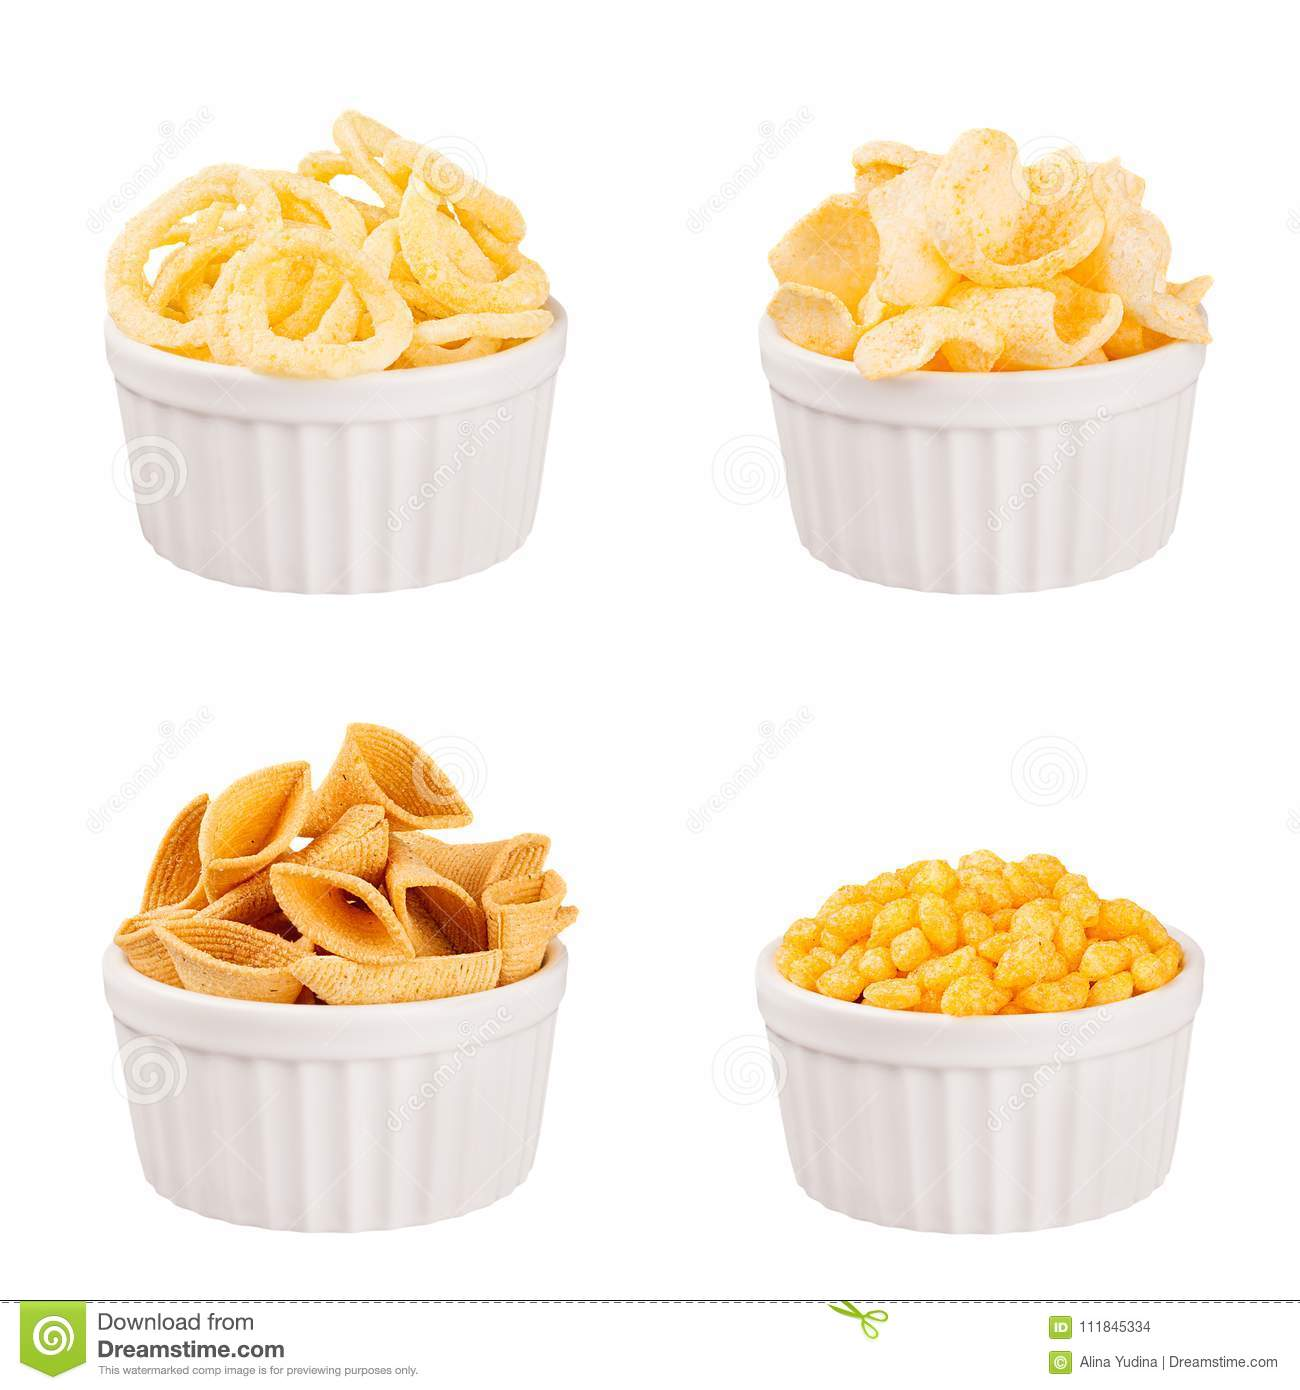 Snacks collection - crunchy different corn sticks in white ceramics bowls, isolated. Fast food template for menu, advertising, cov